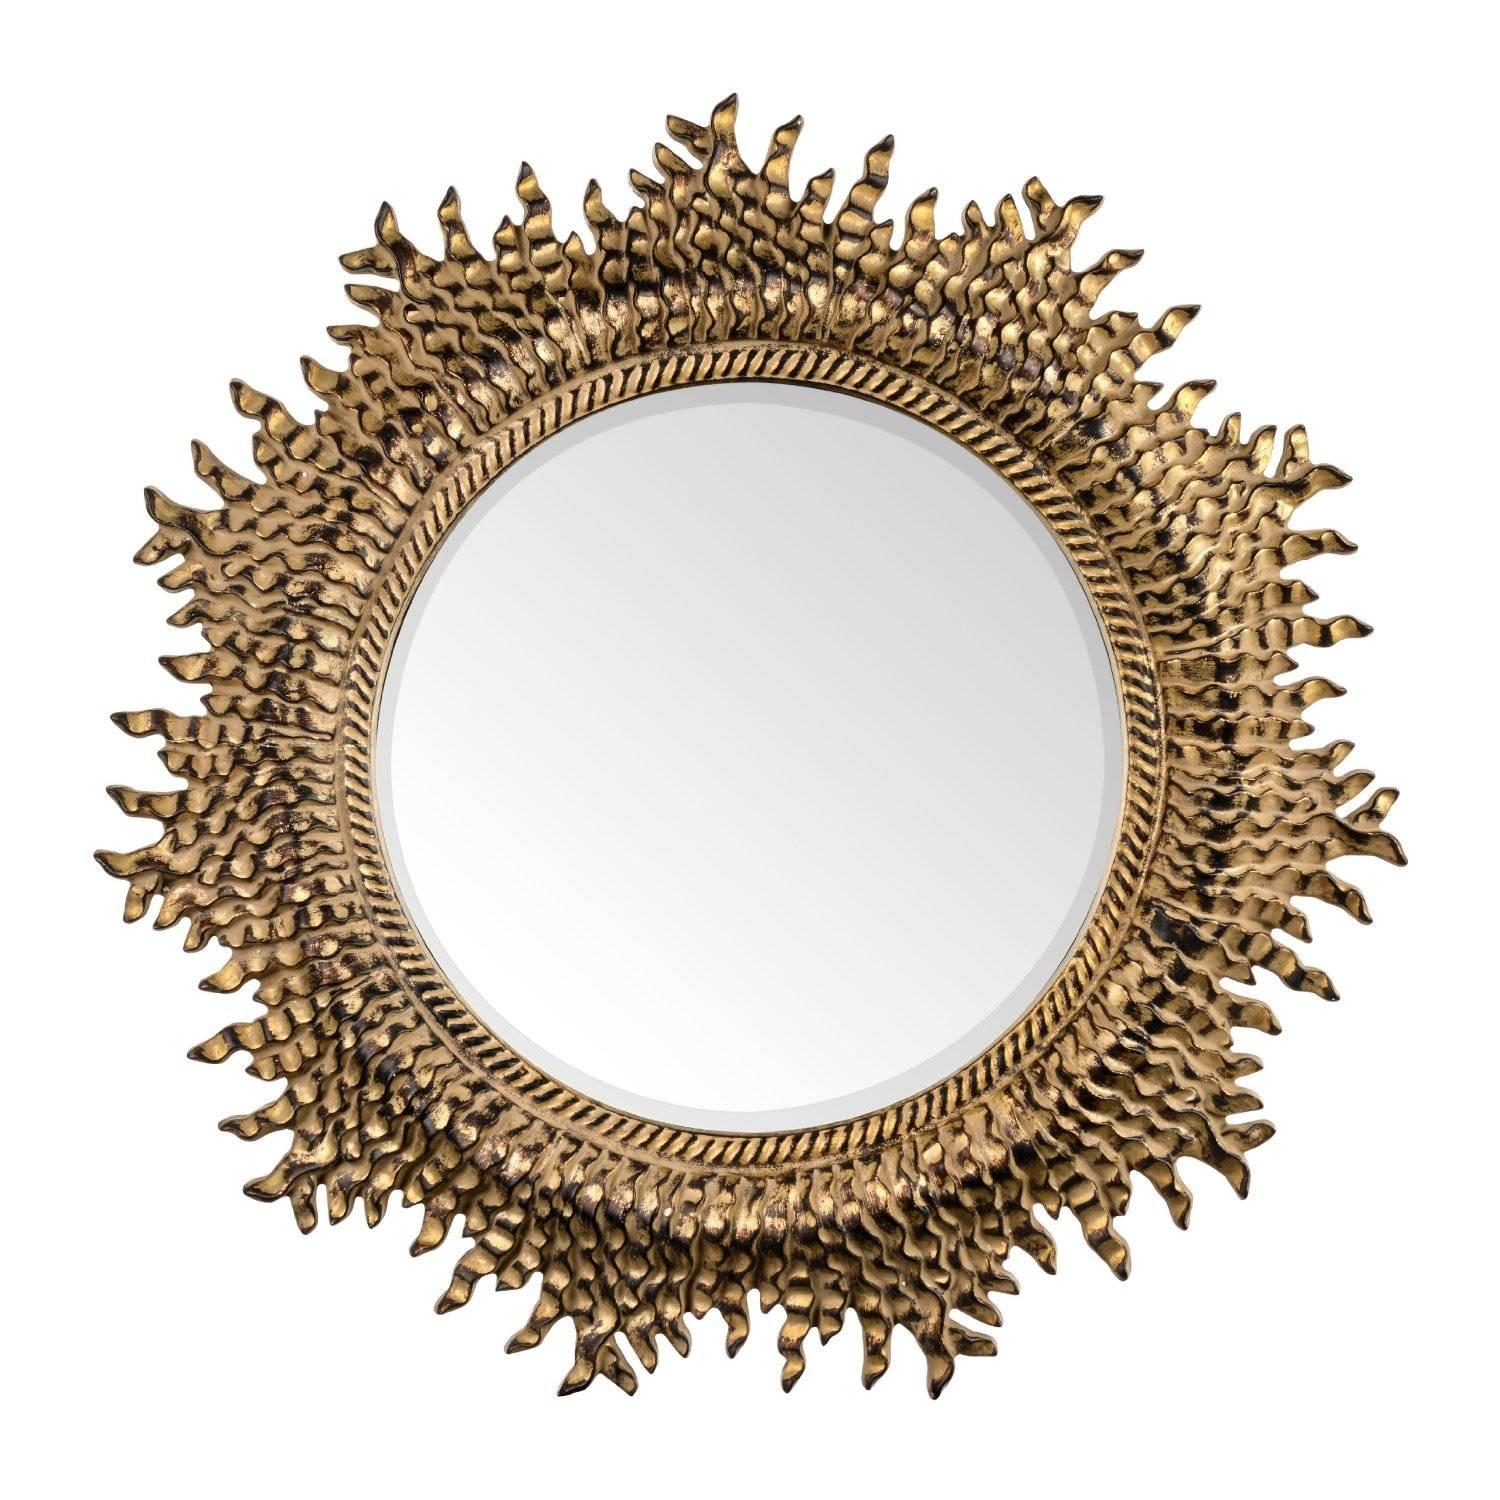 16 Ornate Mirrors For Your Home | Qosy regarding Ornate Round Mirrors (Image 3 of 25)